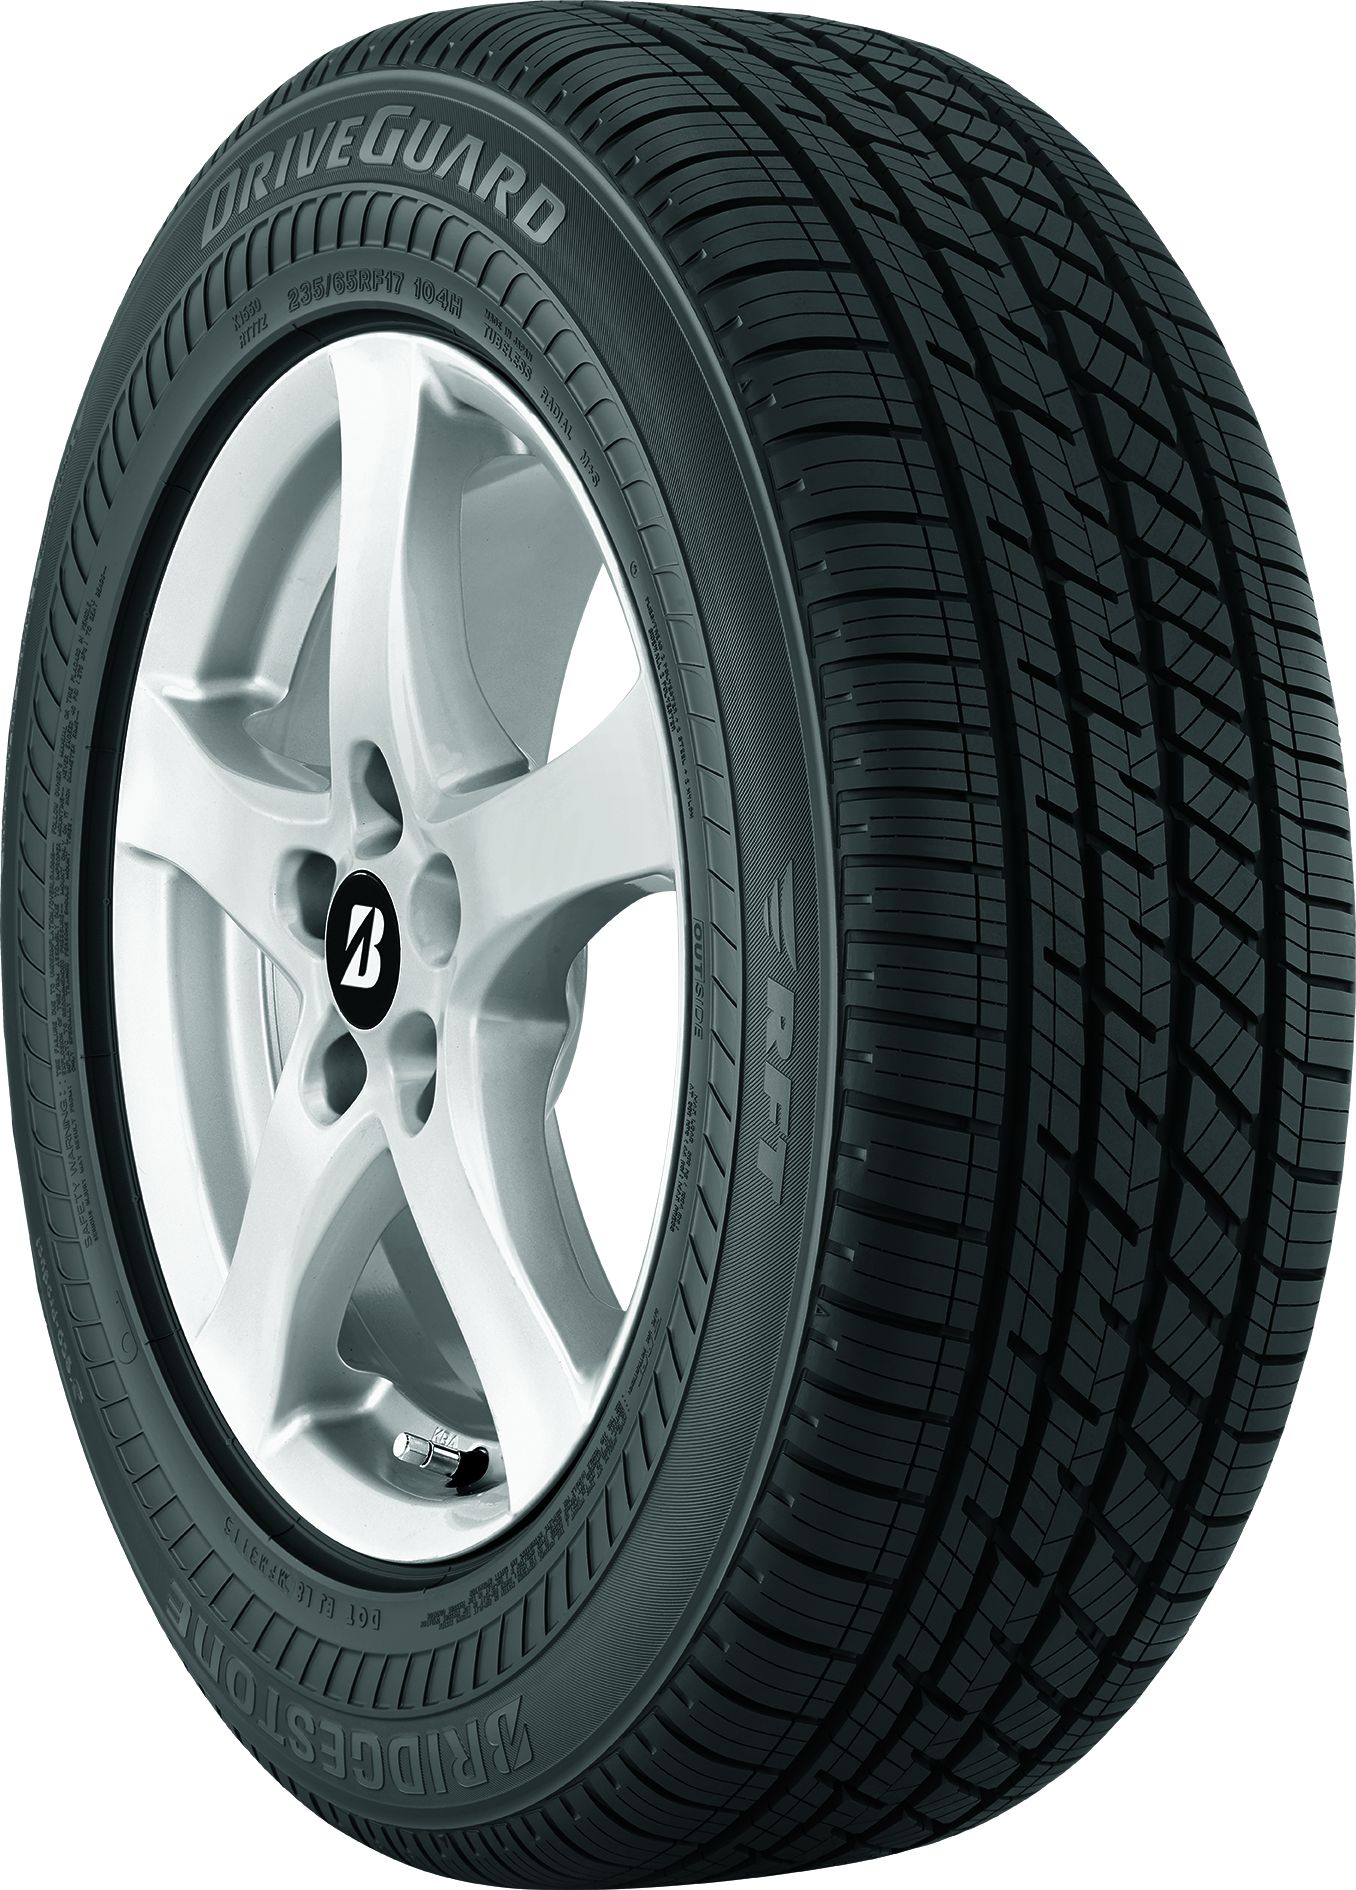 Bridgestone's DriveGuard Is Safe to Drive After A Flat